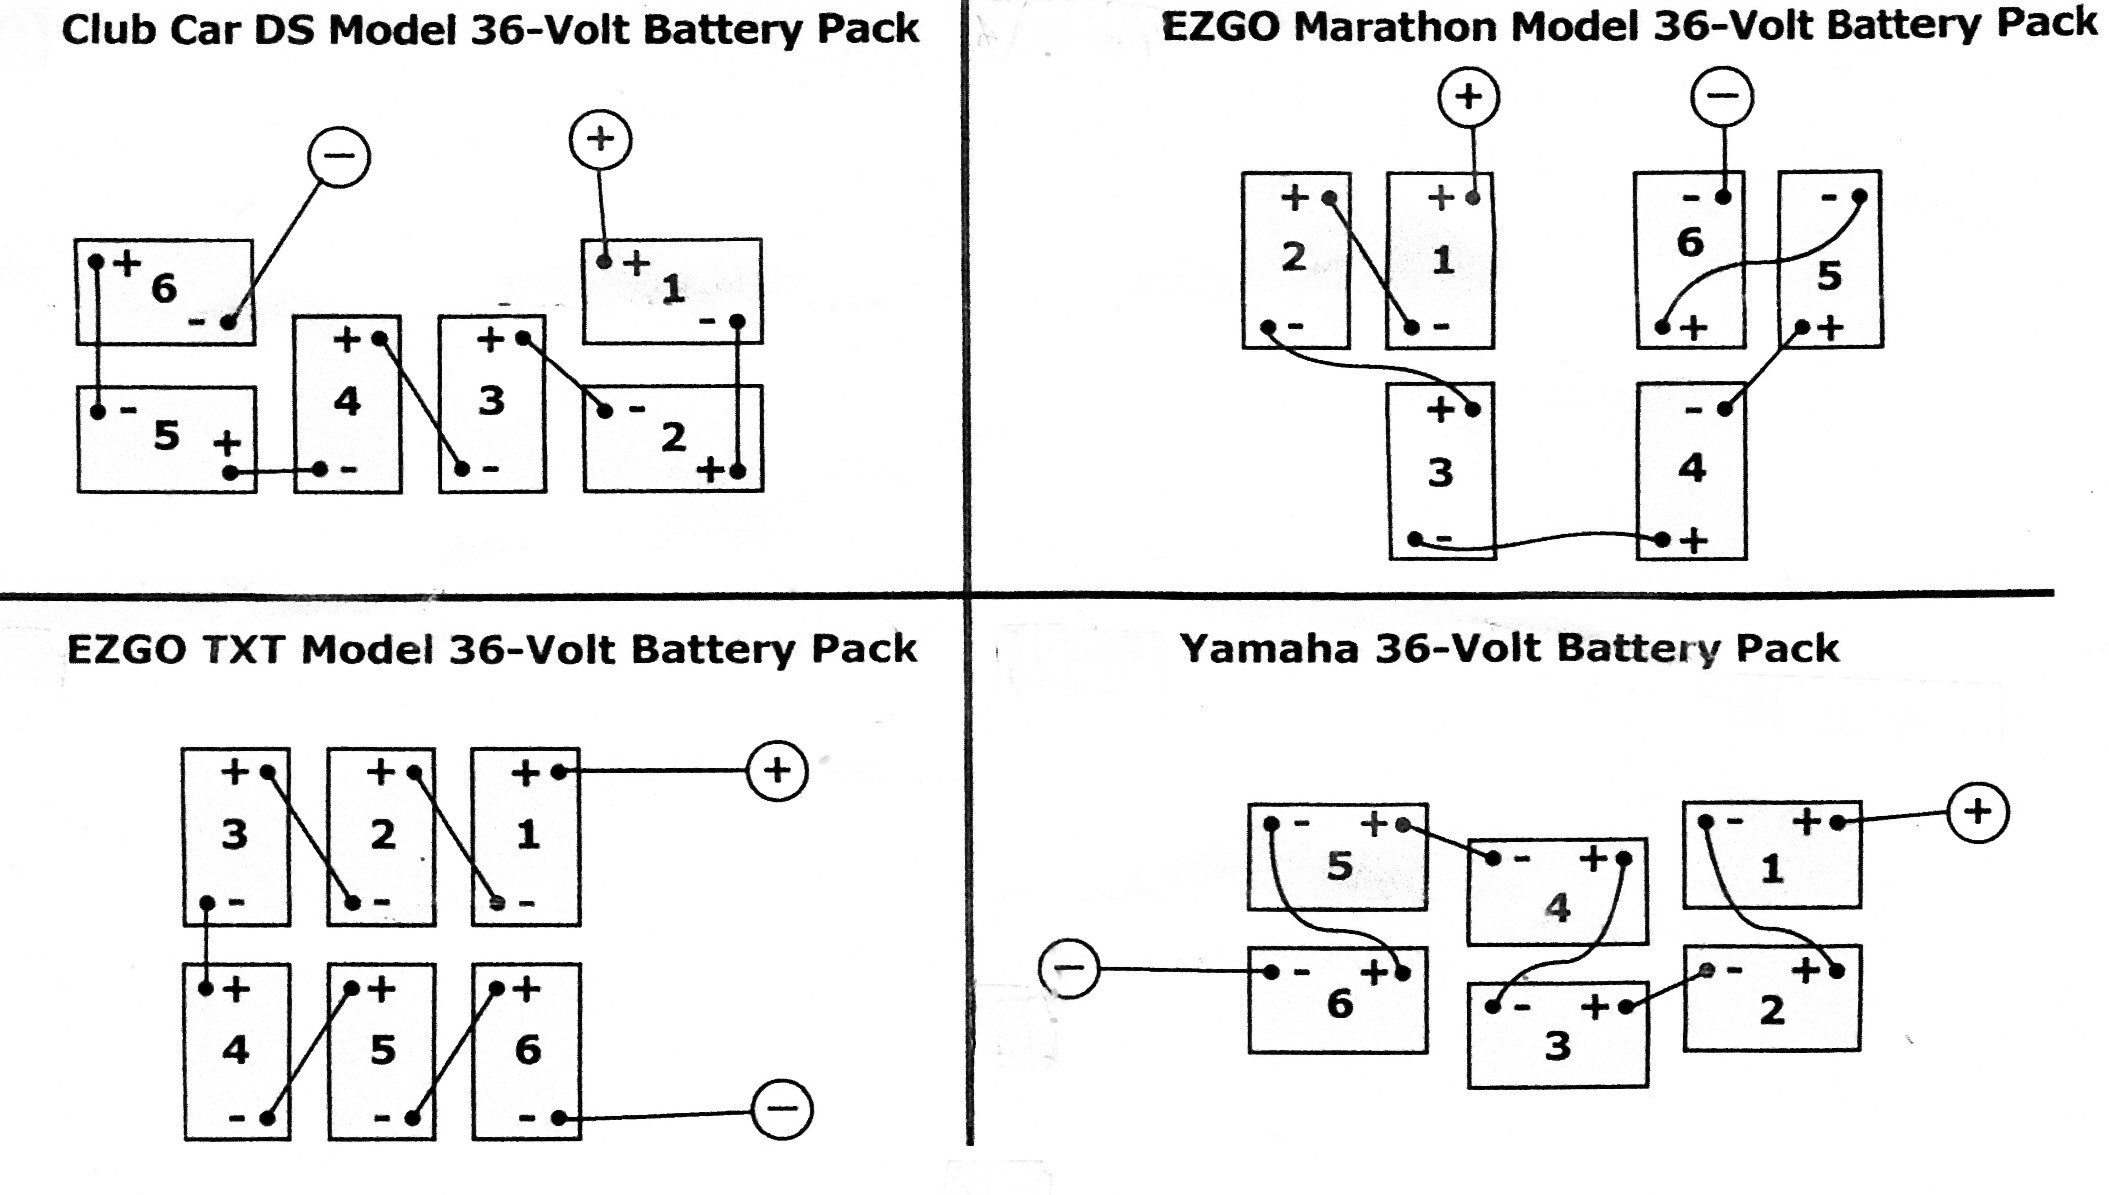 36 Volt Ezgo Txt Battery Wiring Diagram | Manual E-Books - Ez Go Txt 36 Volt Wiring Diagram